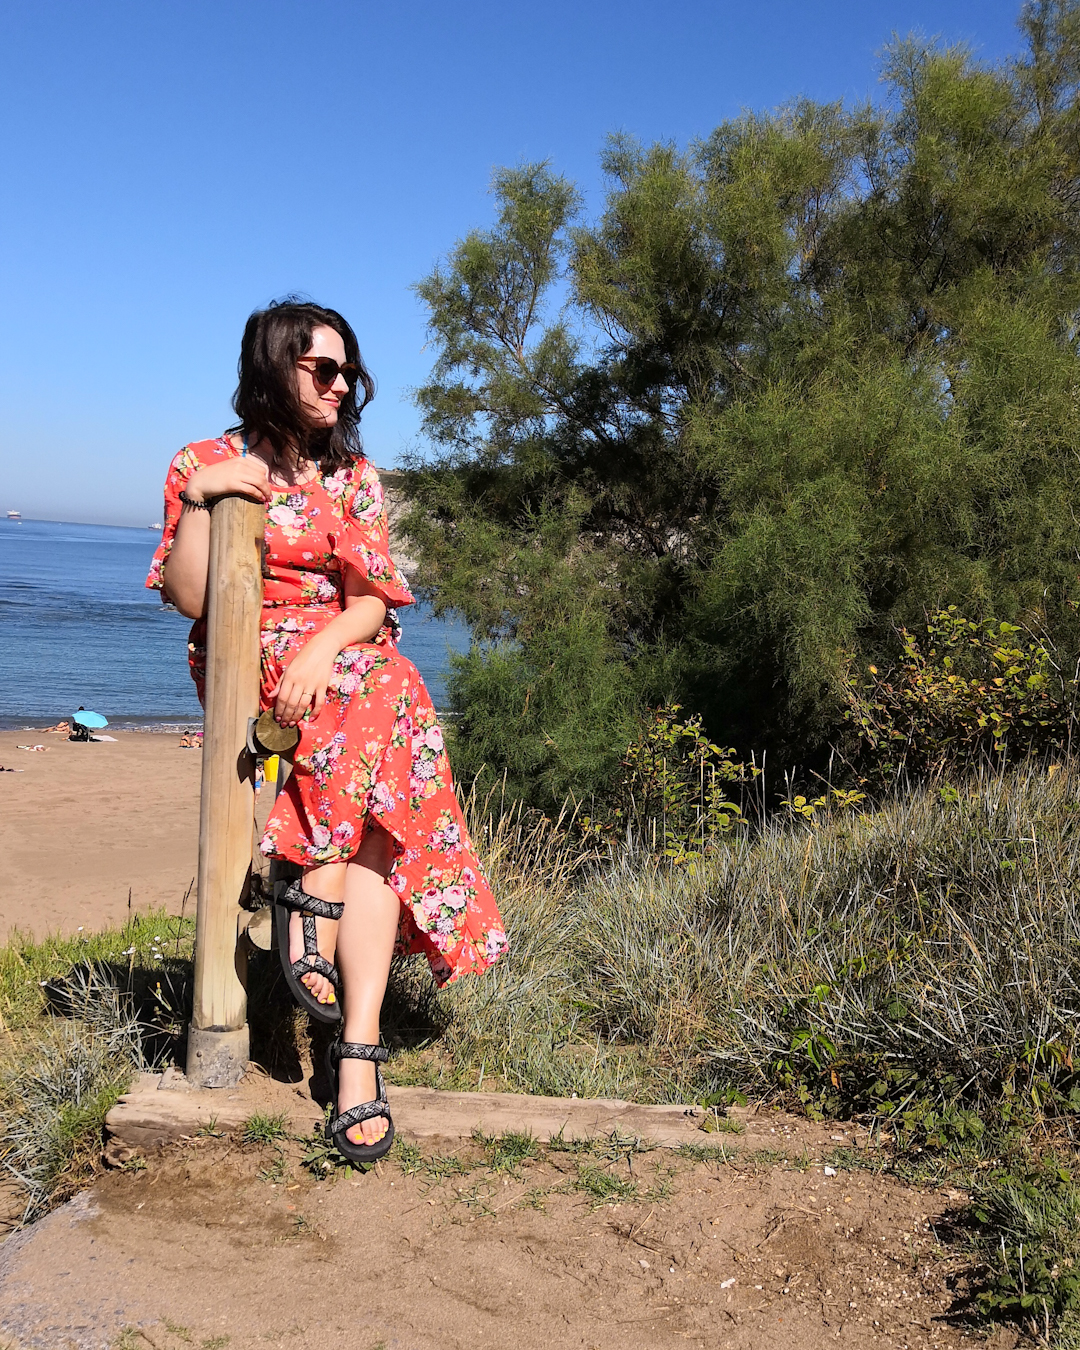 Katie is at the beach. She wears sunglasses & an orange maxi dress with floral pattern & tiered hem. She sits on a wooden rail leading to the beach, the sea is behind her.